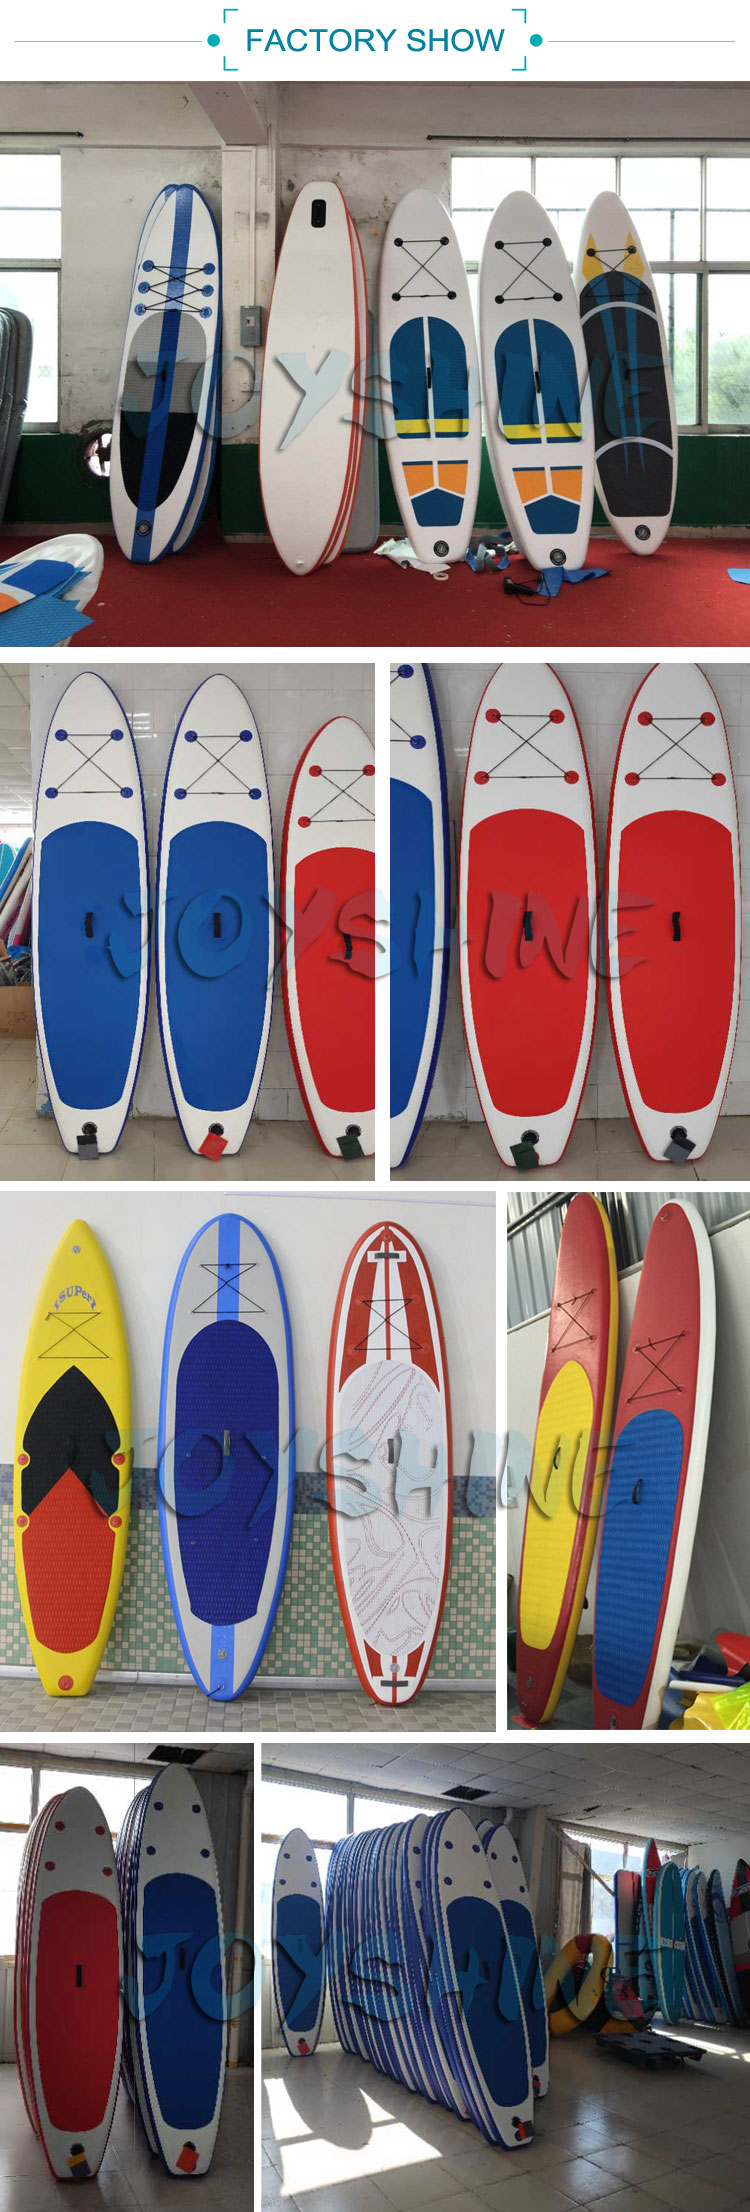 Custom Size Surfboards Sup Windsurf Paddleboard Durable Inflatable SUP Paddle Board Stand From Joyshine Factory